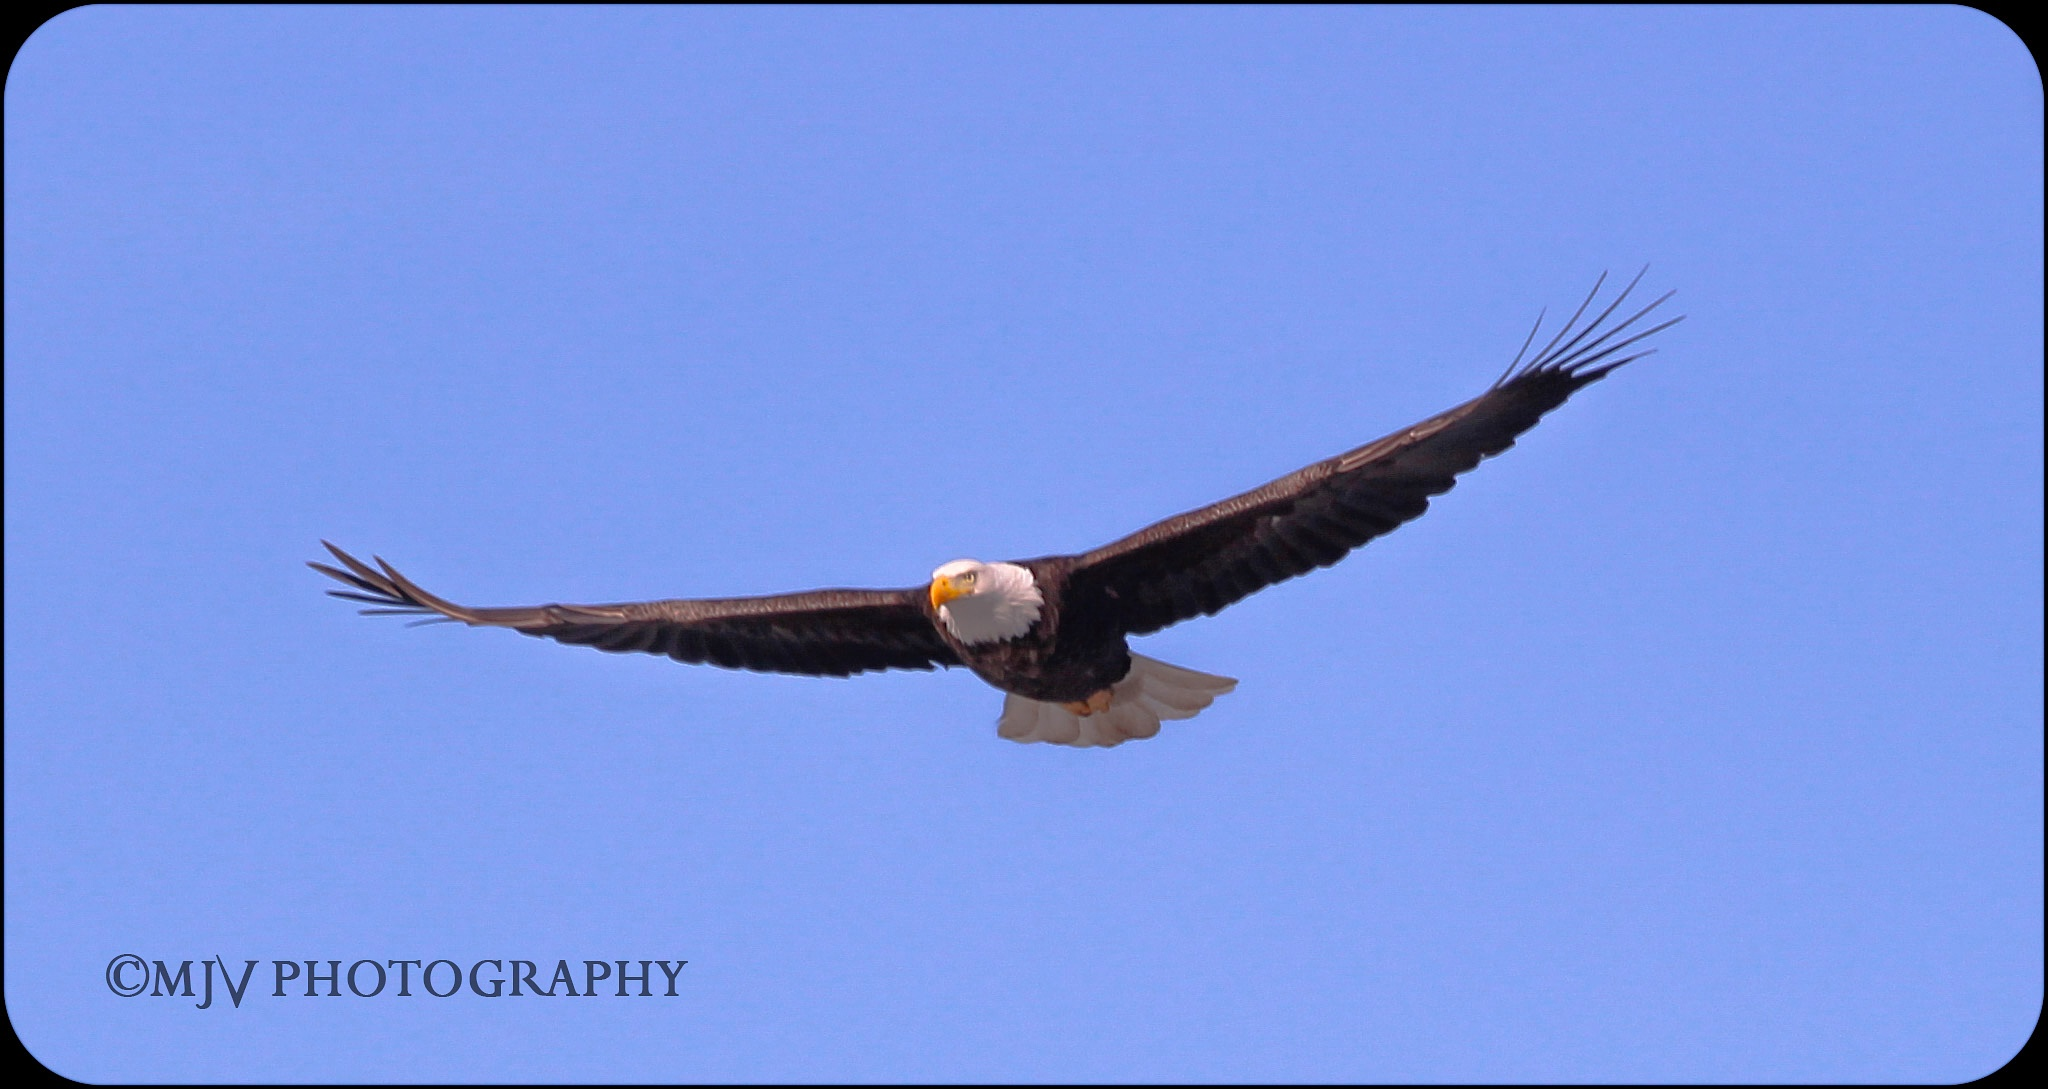 Perfect View caught in the right time Eagle  by mjvphotography73